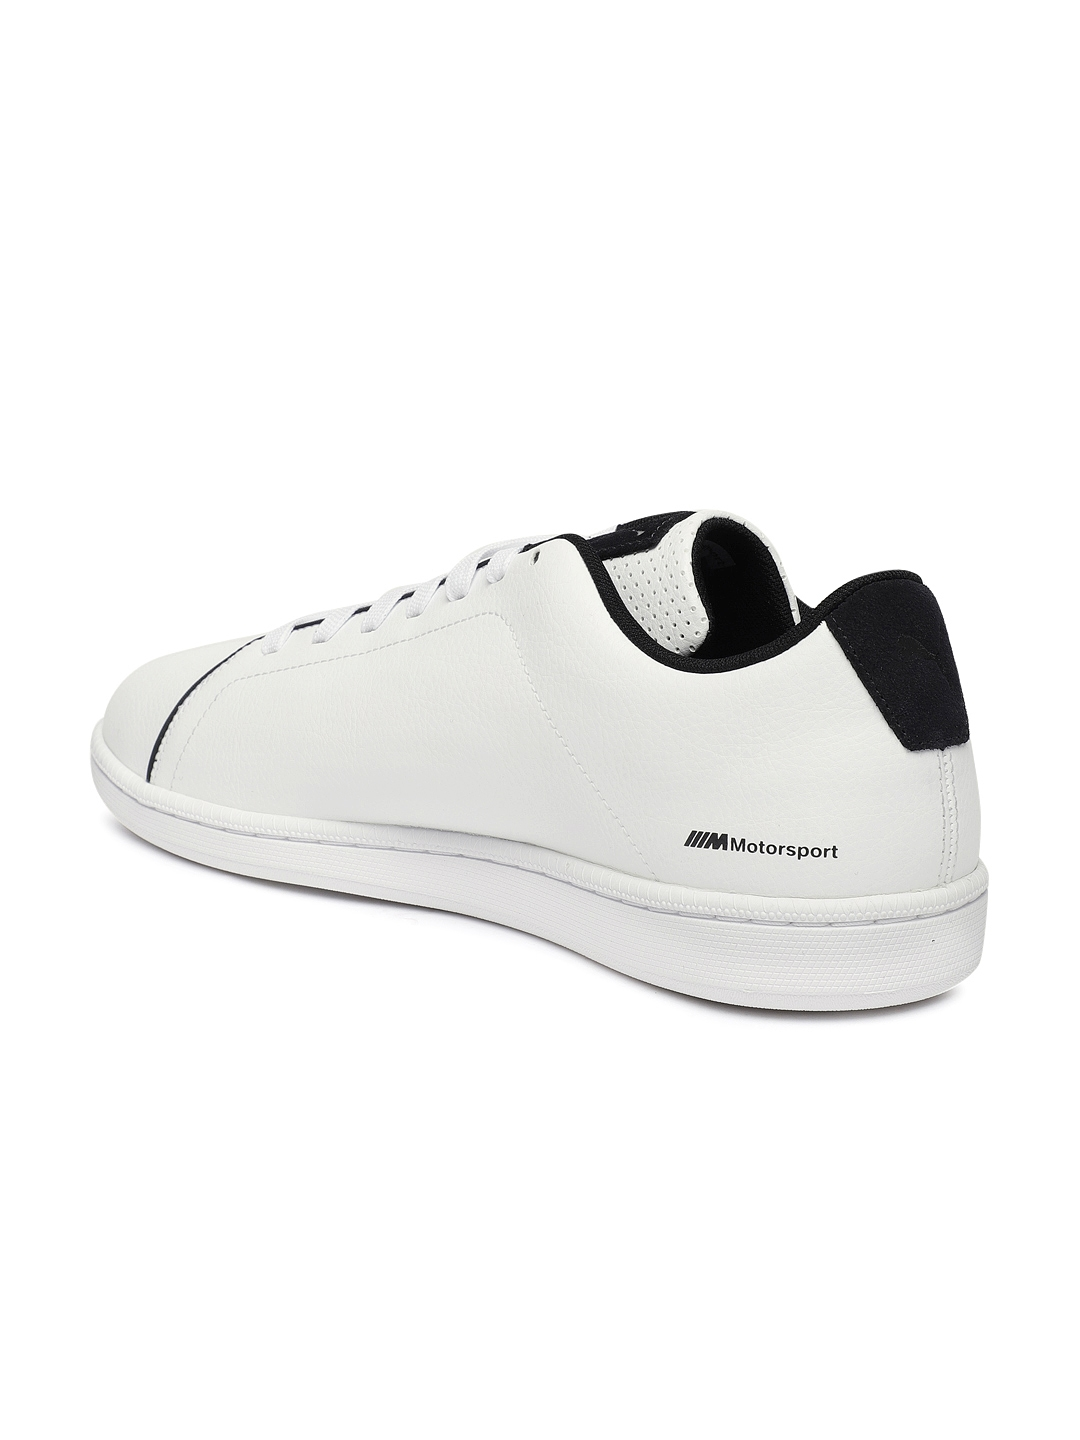 b7d5cf62b01954 Buy Puma Men White BMW Motorsport Court Perf Sneakers - Casual Shoes ...